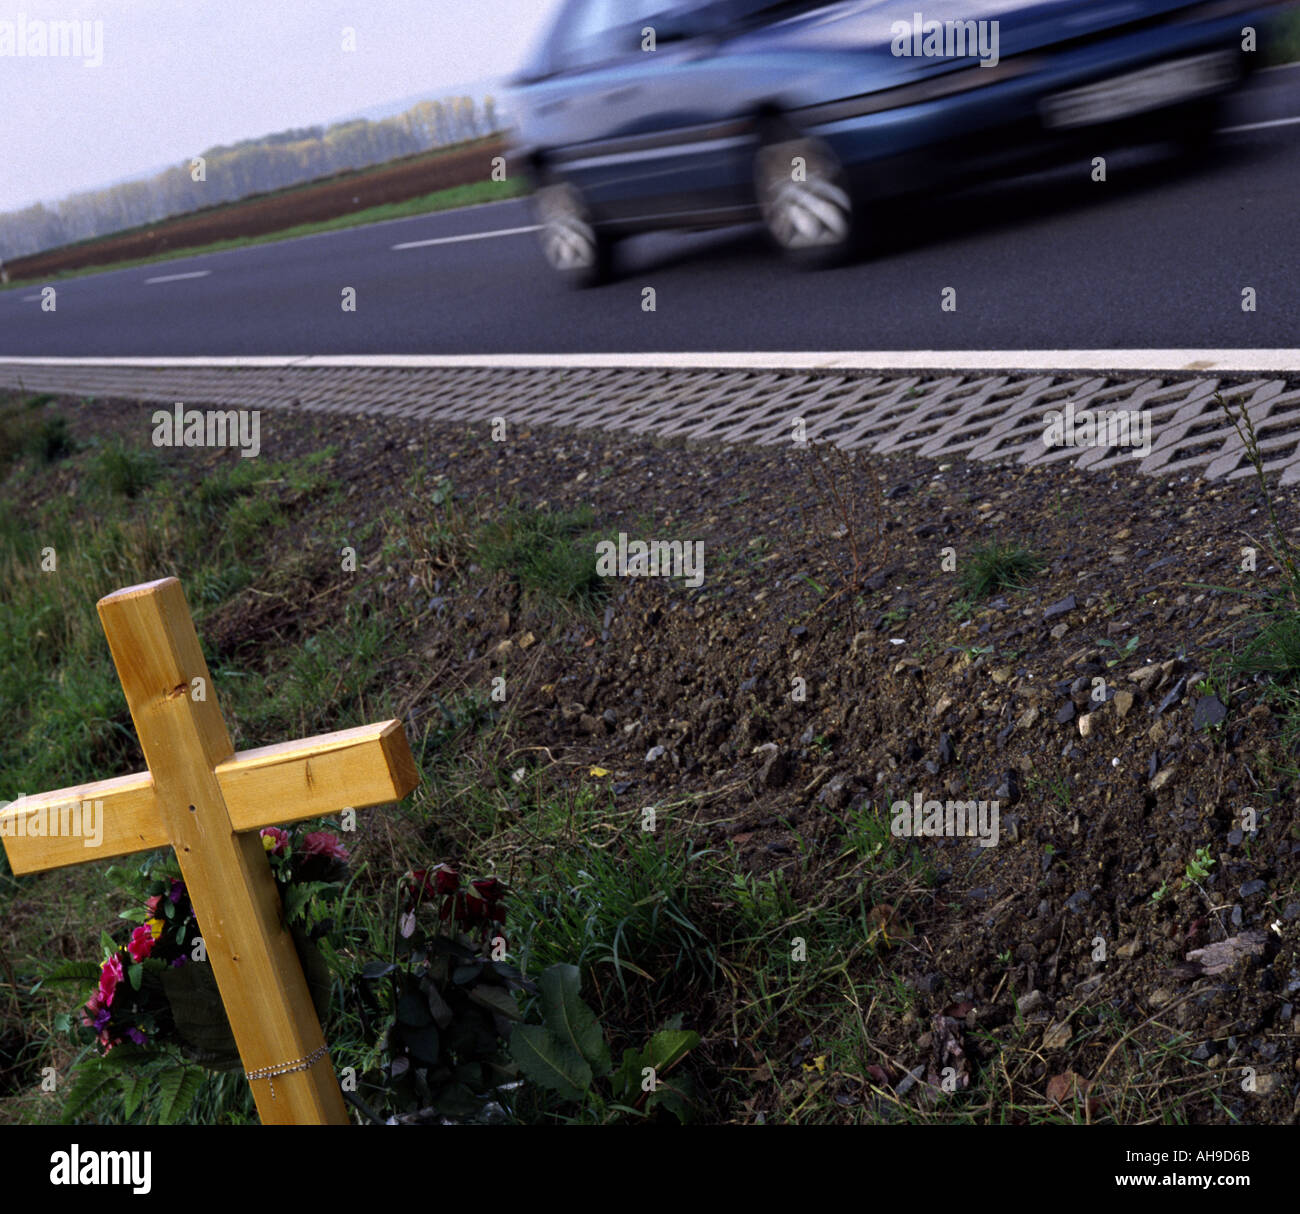 cross for the victims of traffic on the border of a country road - Stock Image